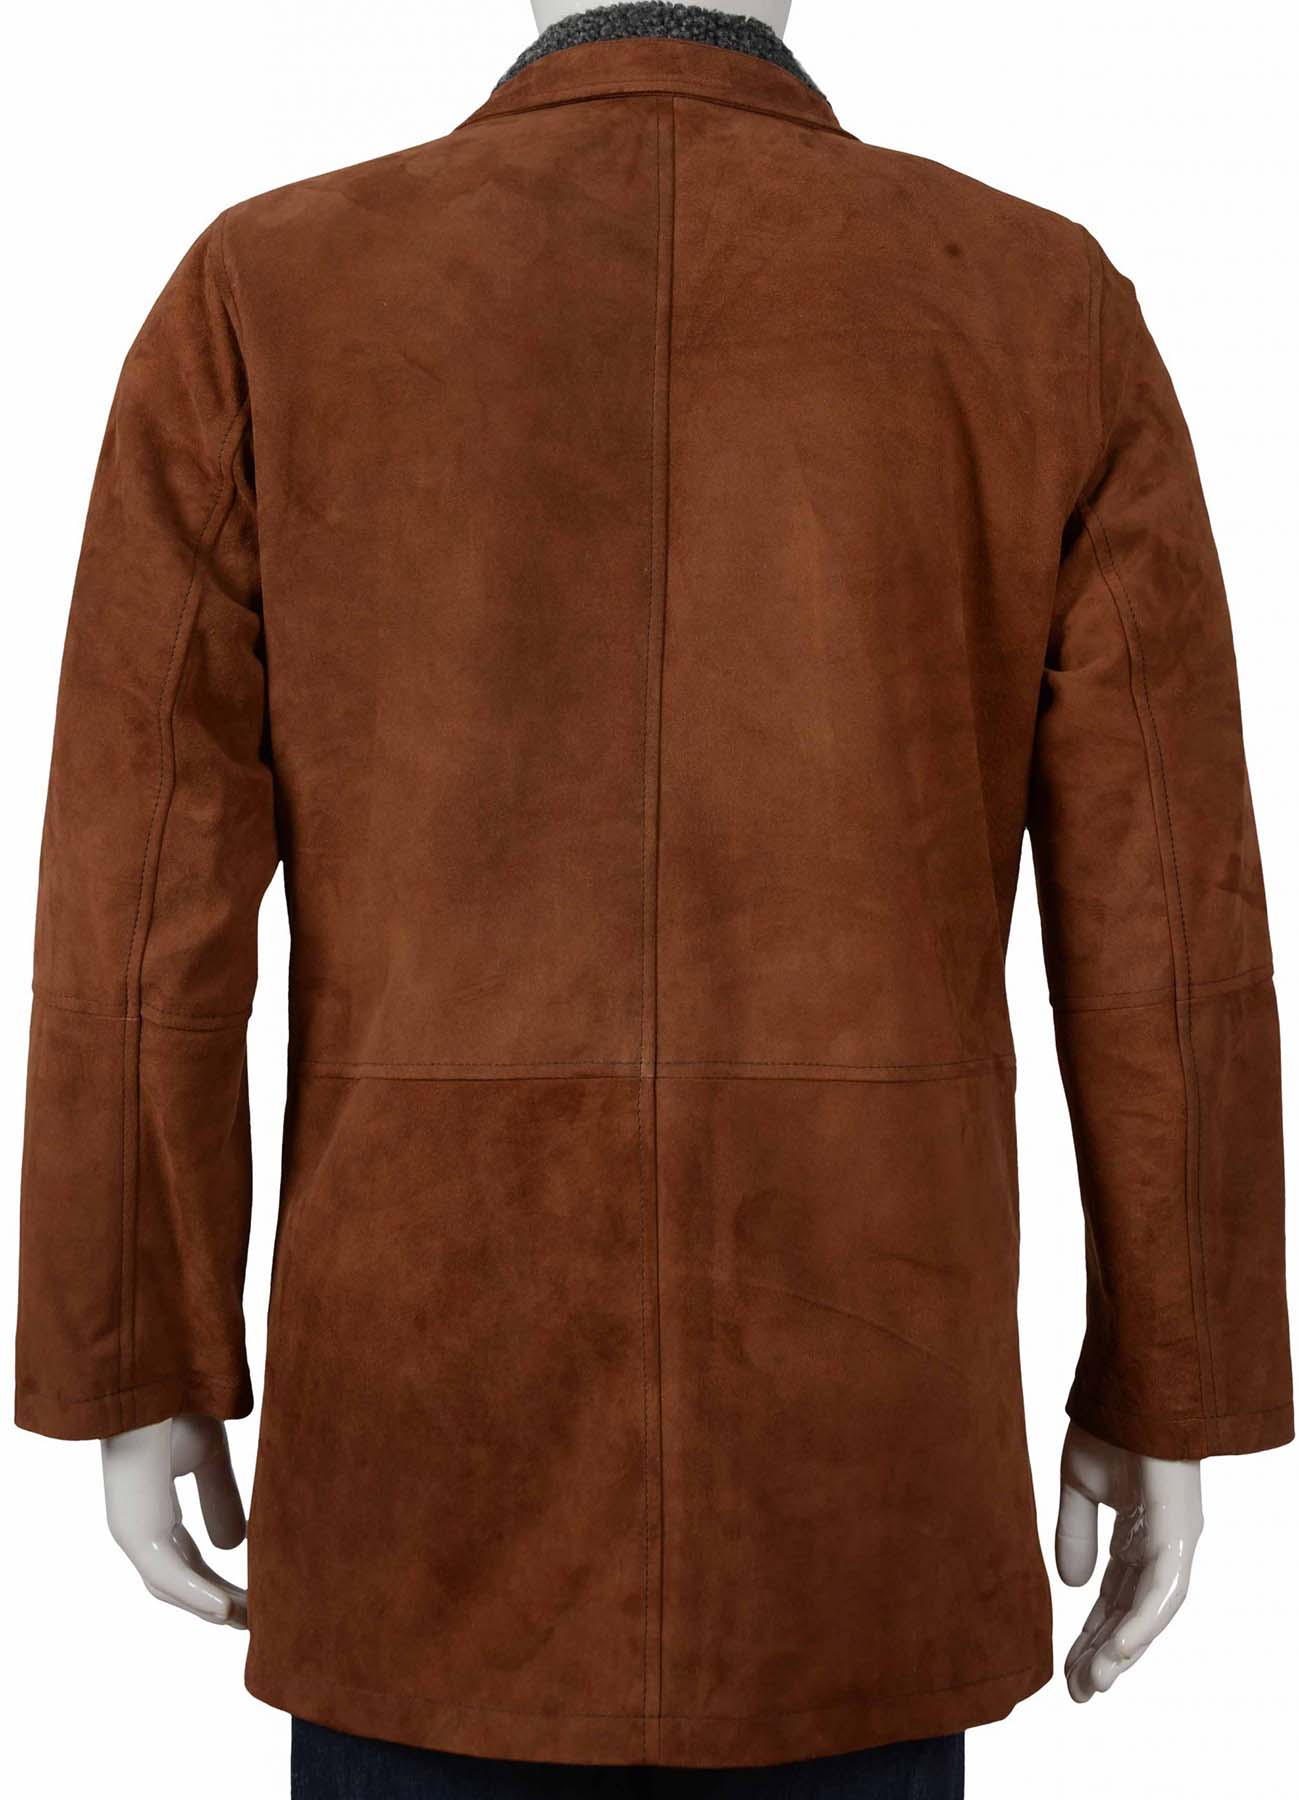 Brown Long Suede Leather Coat With Shearling Collar